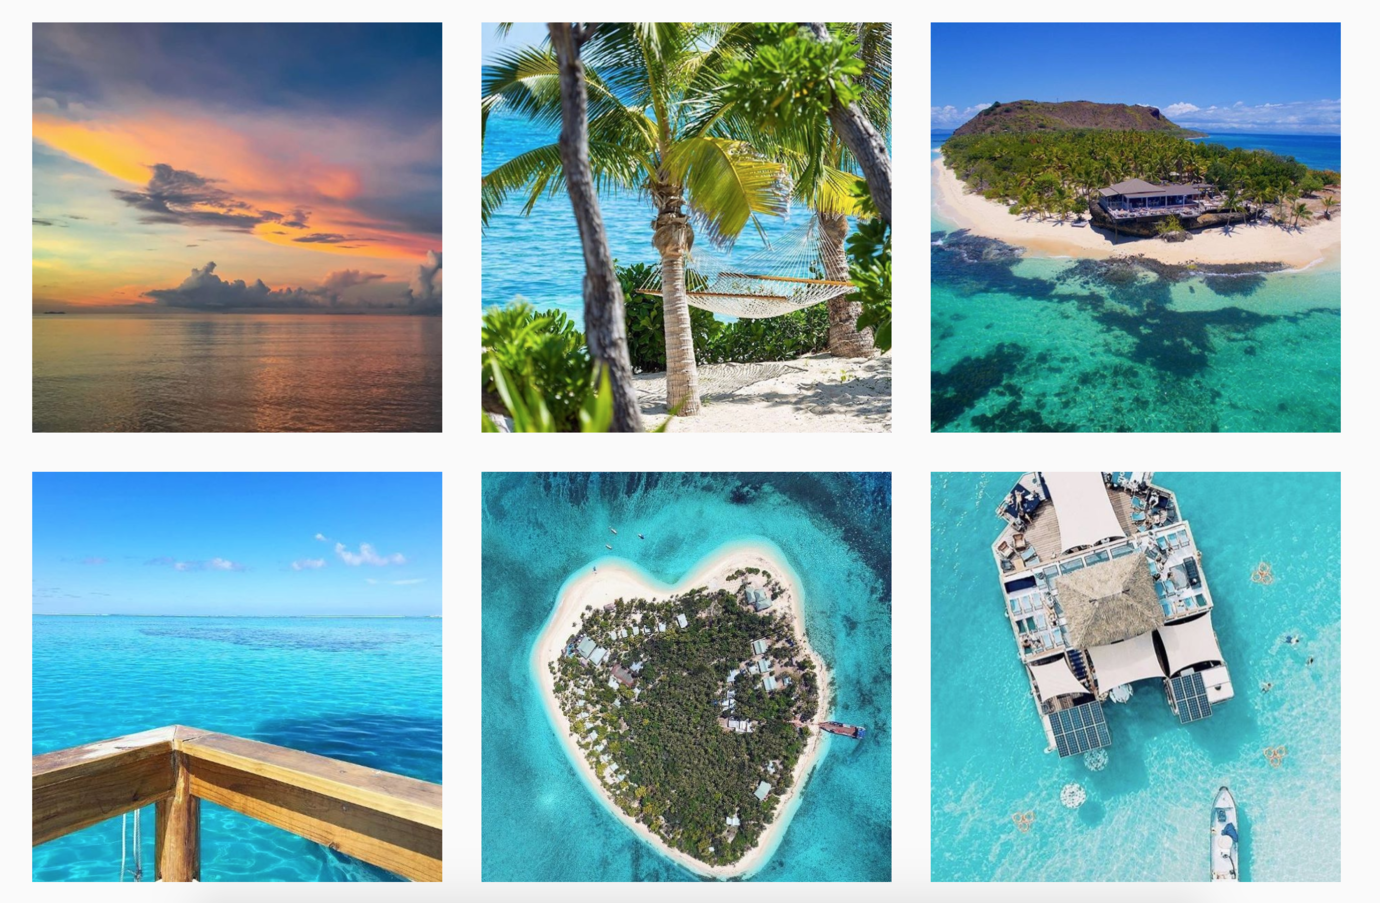 Instagram For Business: 10 Tips From the Tourism Industry